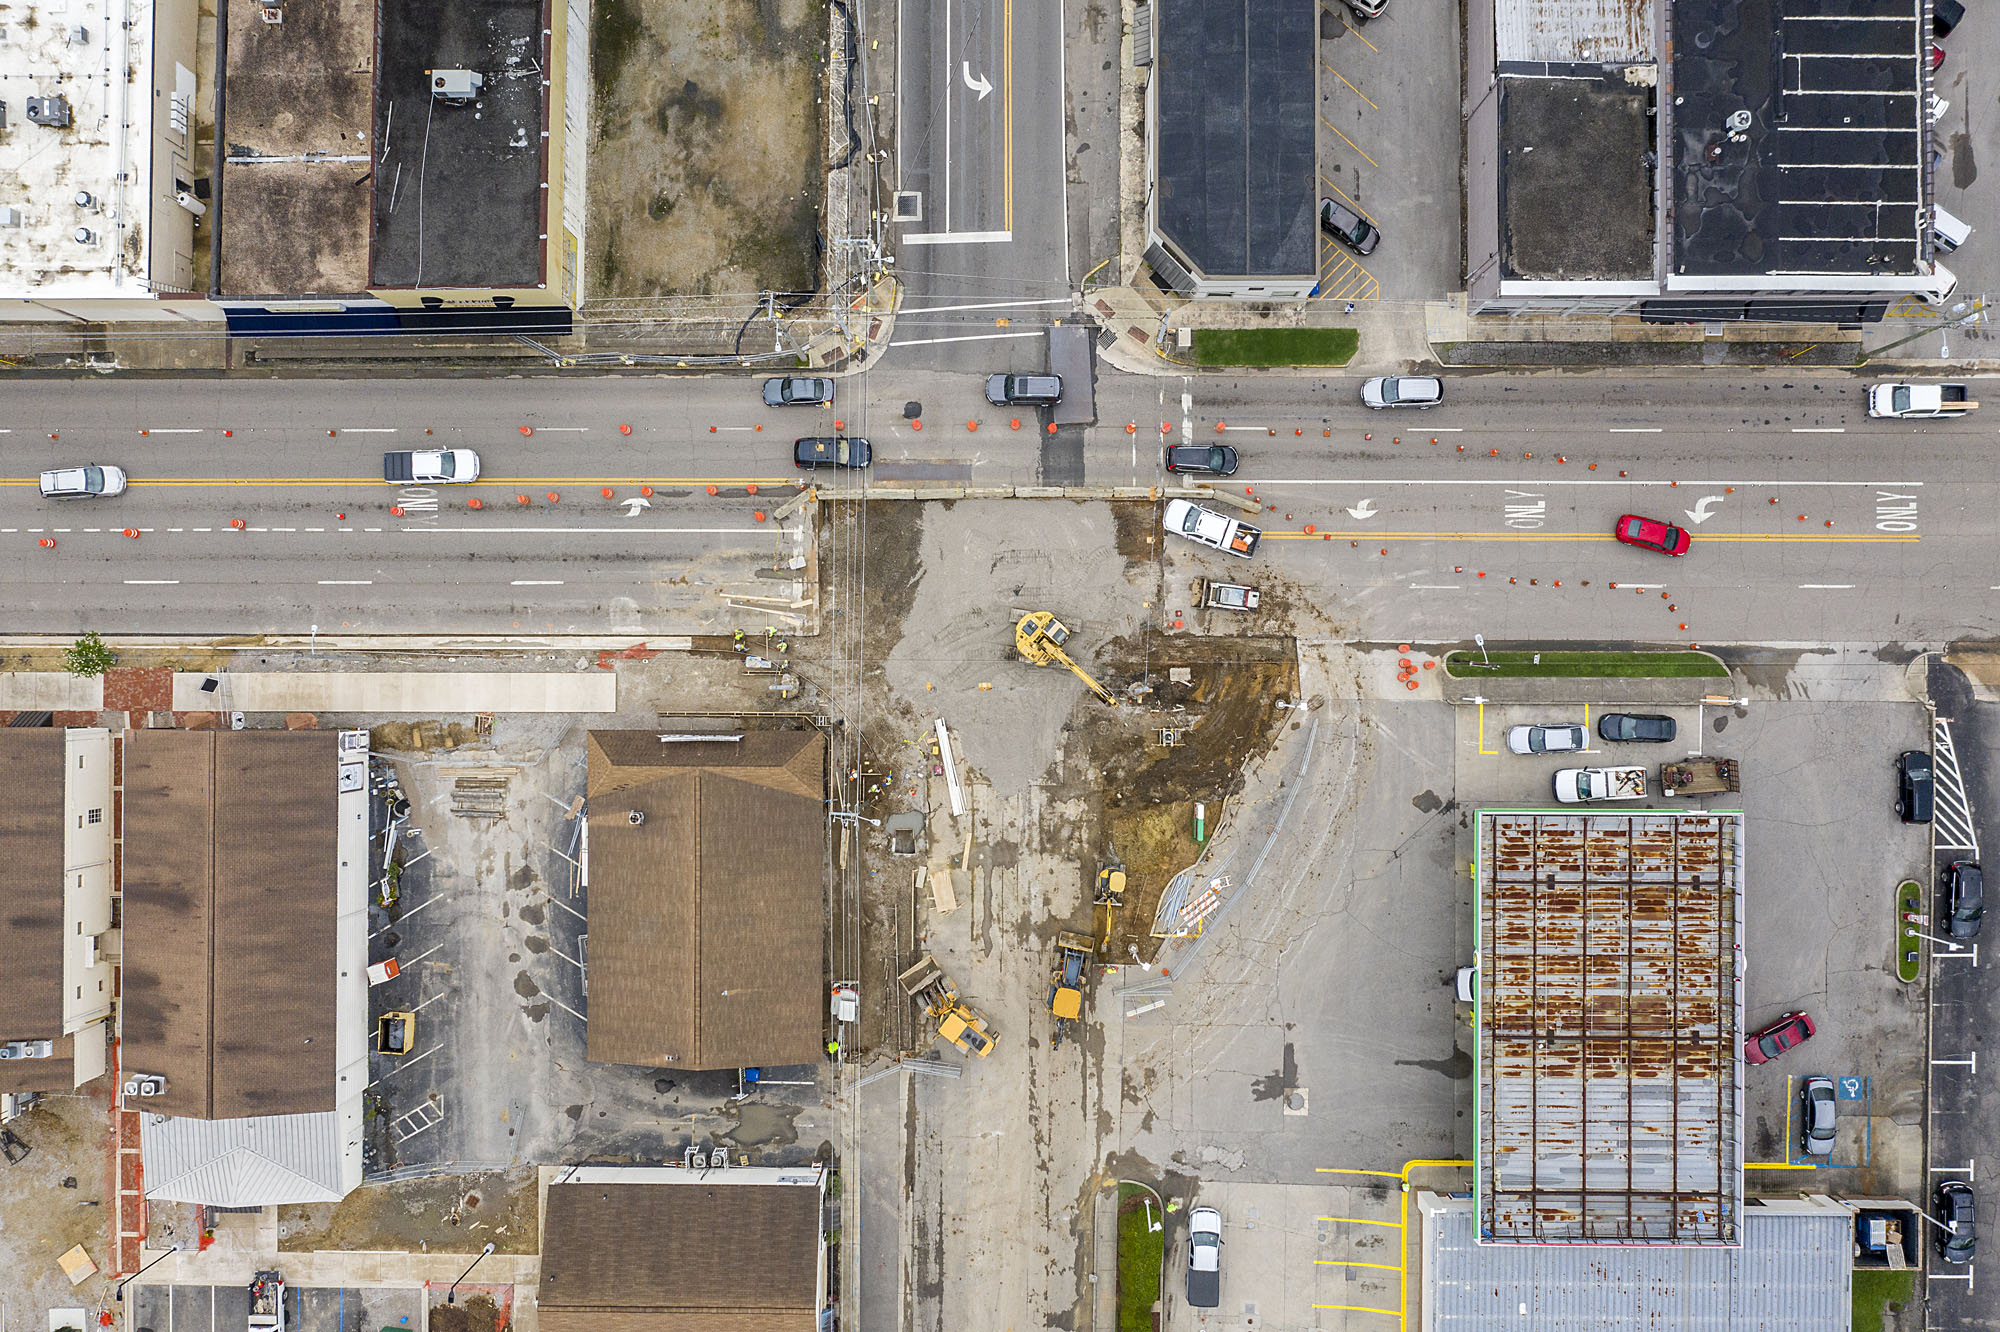 Work on downtown Trussville intersection underway, fewer delays than expected